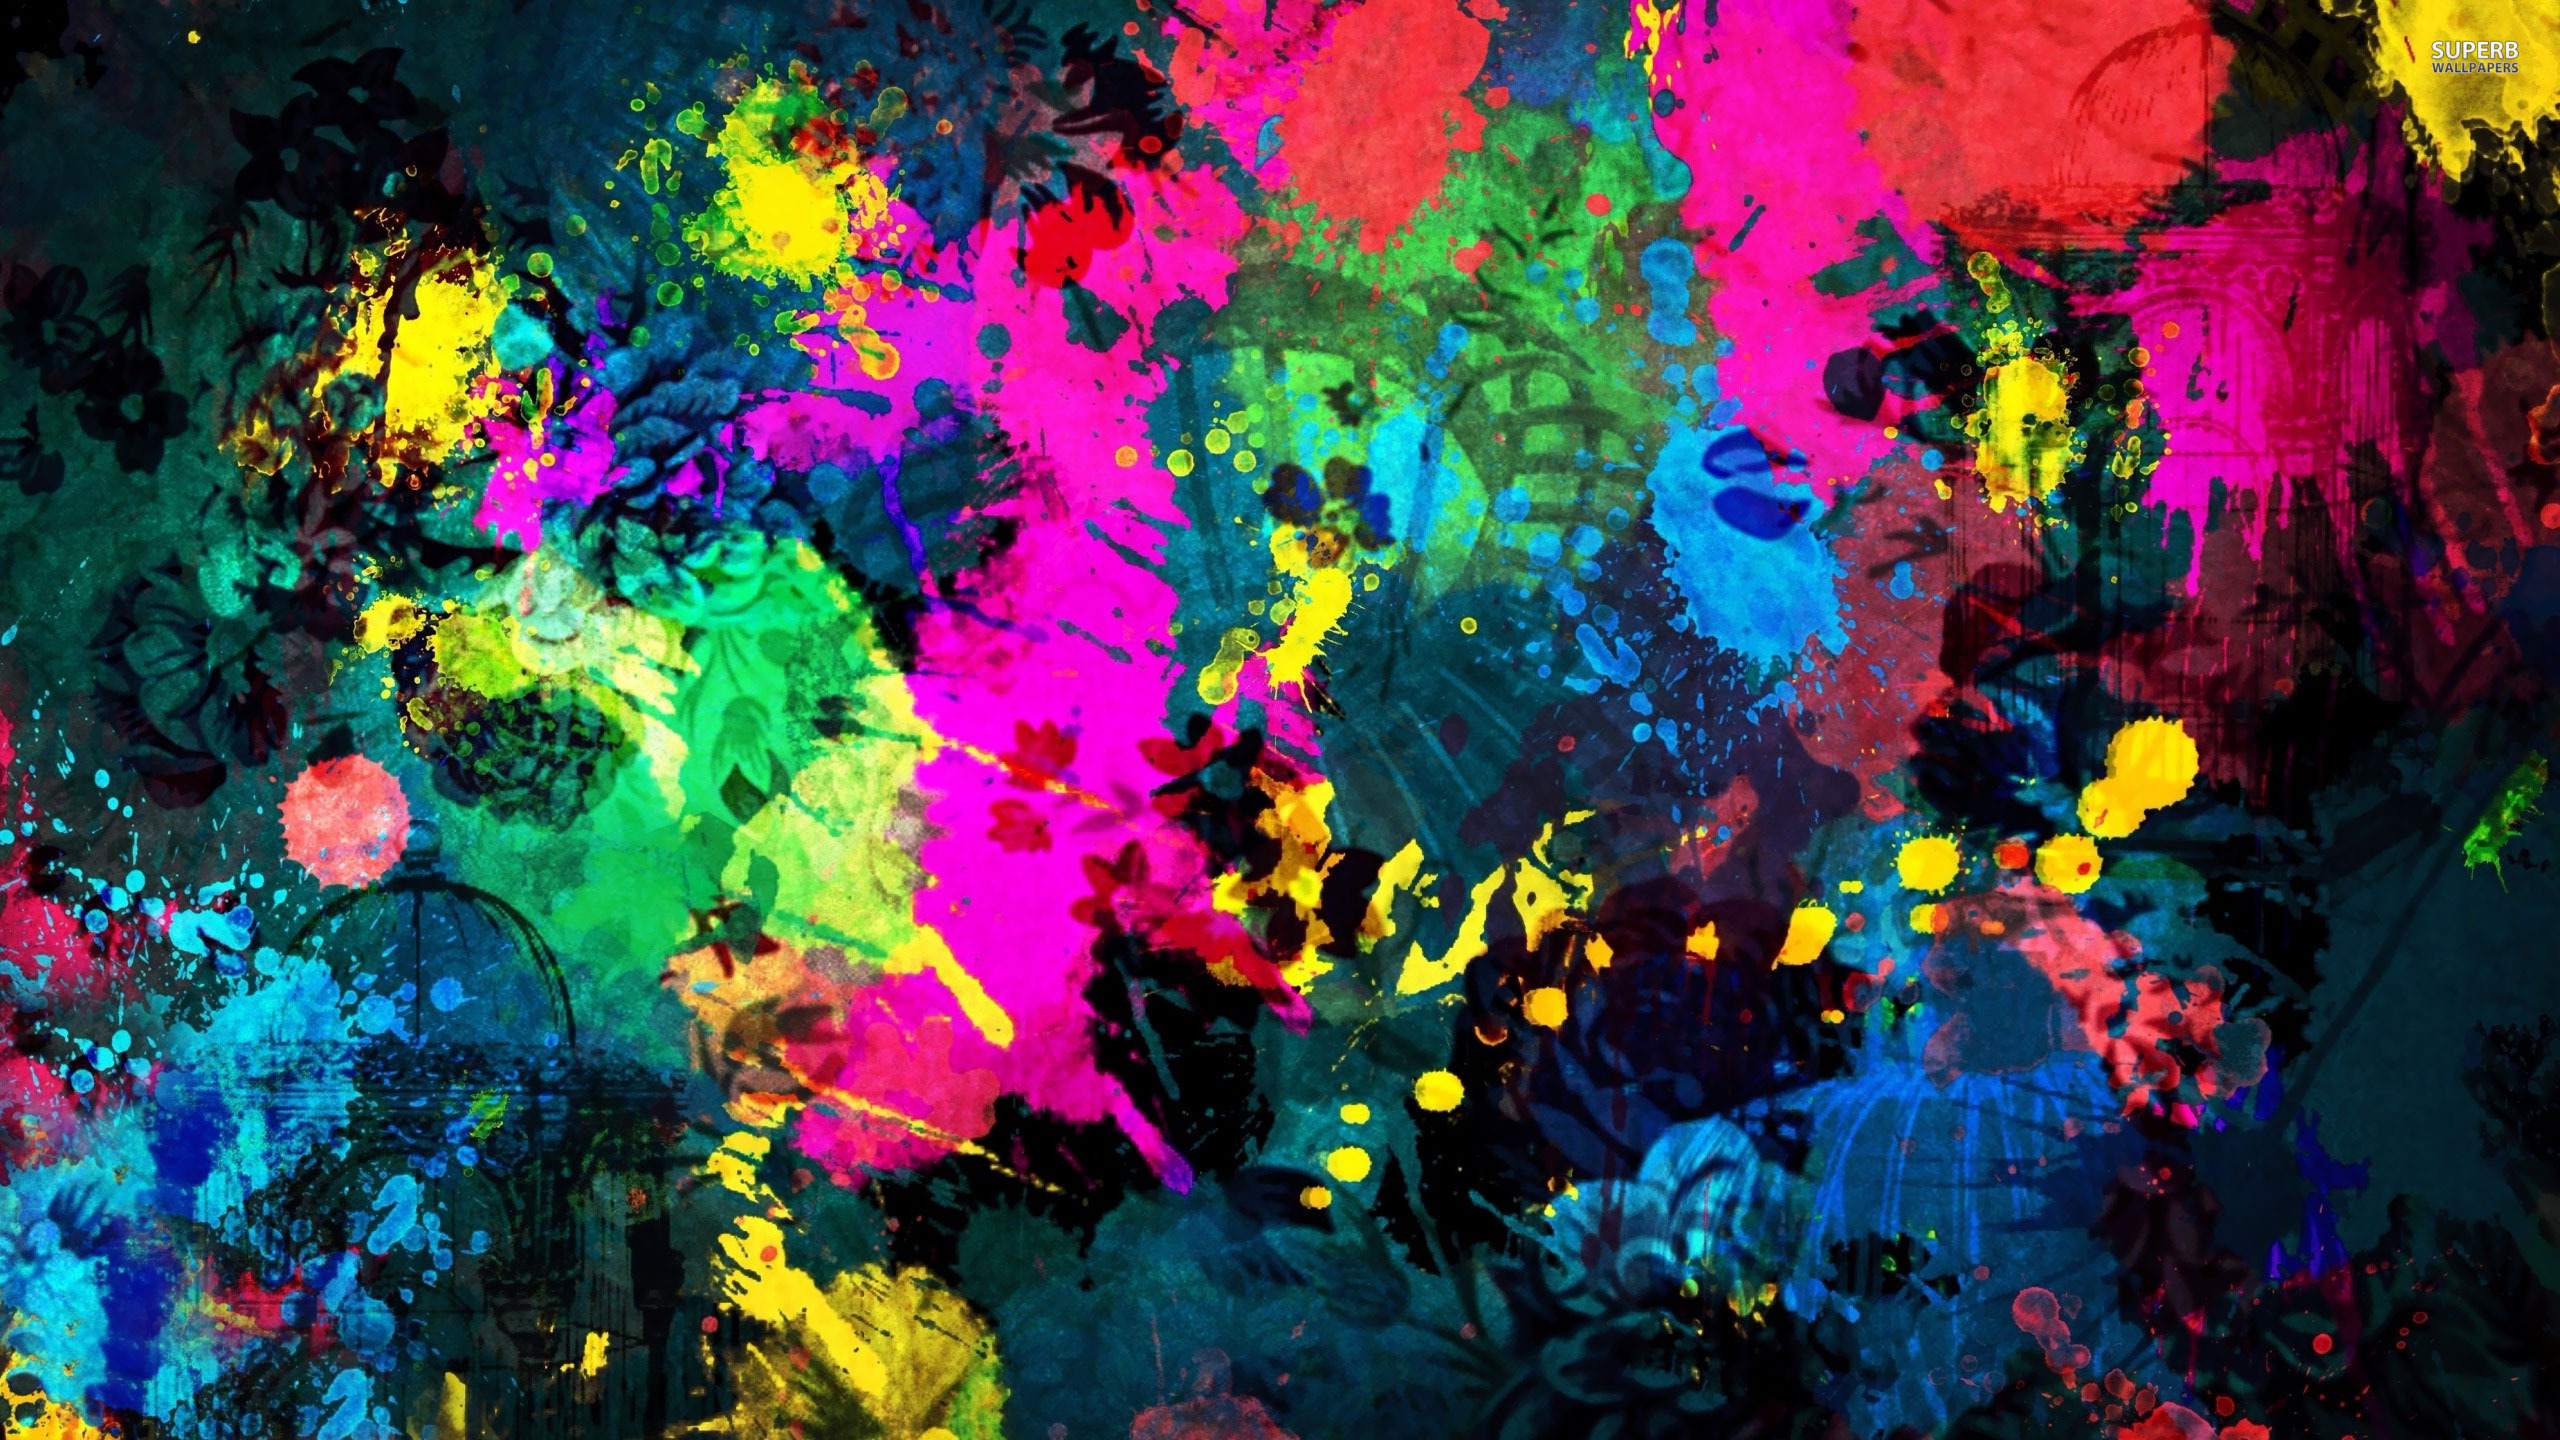 Colorful paint splatter wallpaper 2560x1440 jpg